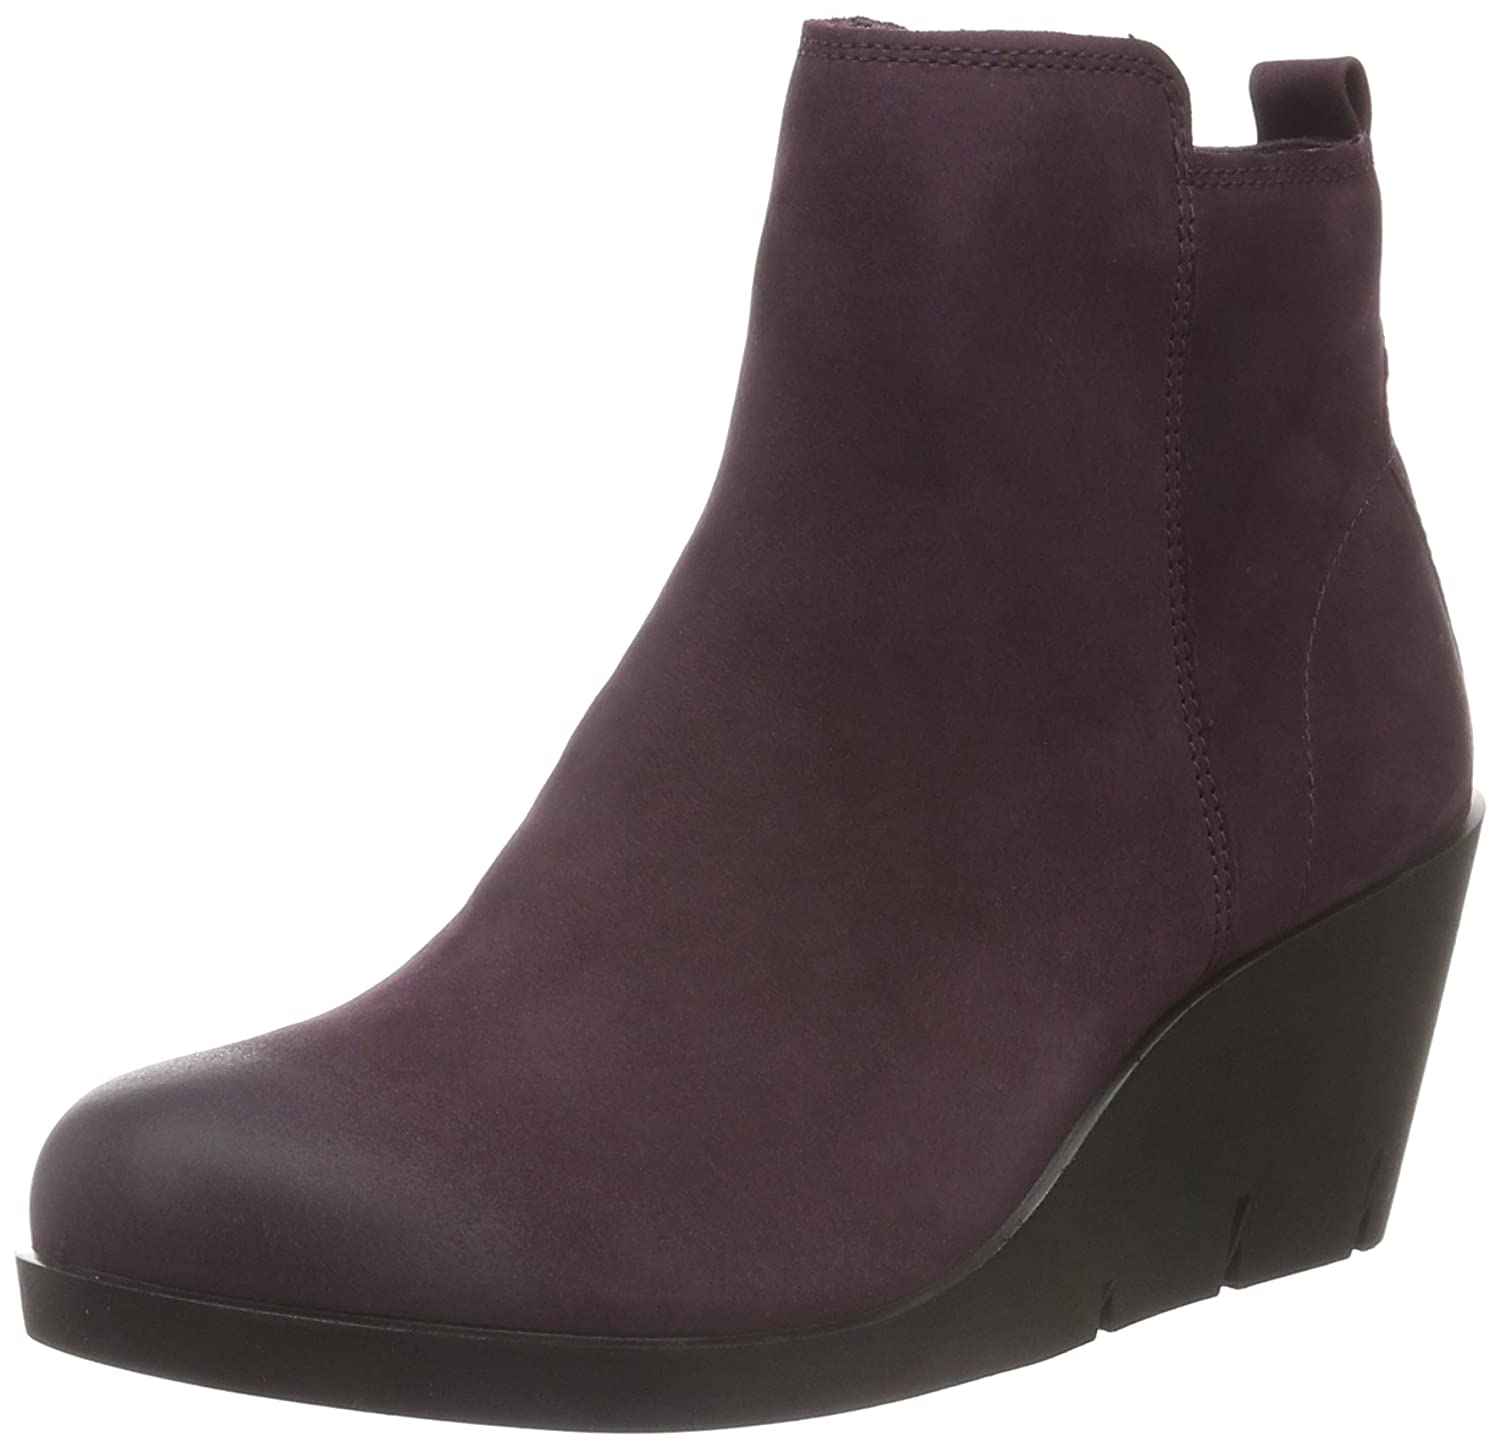 70d40f72a7b0 ECCO Women s s Bella Wedge Ankle Boots  Amazon.co.uk  Shoes   Bags